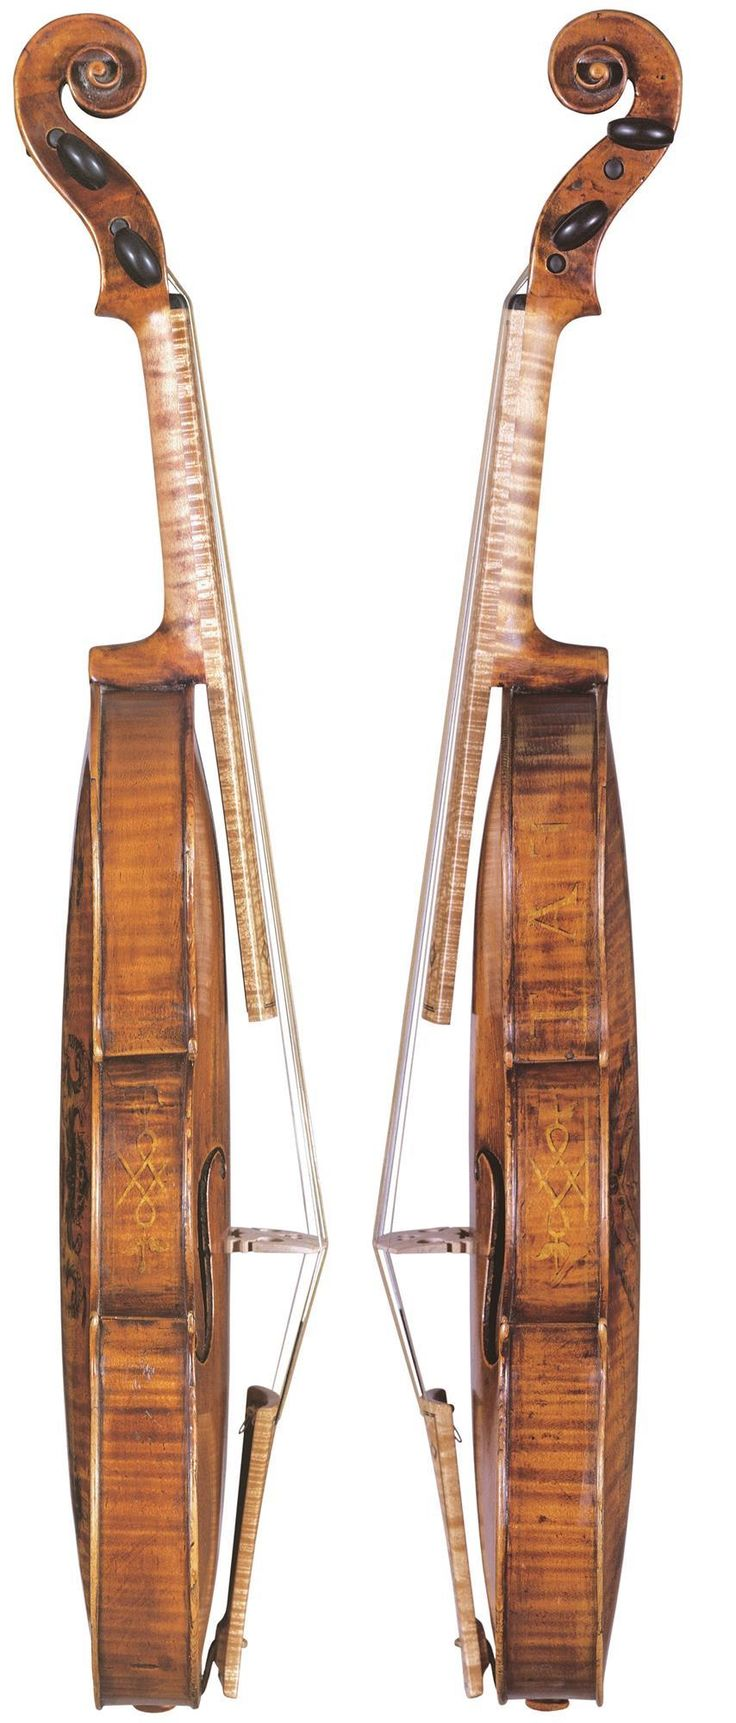 Based in Cremona, the Friends of Stradivari network brings together instruments owned by collectors and stringed-instrument enthusiasts from around the world. The Strad Calendar 2018 celebrates twelve of these treasures, with this violin from a private collection in Germany featuring in October. Text by John Dilworth